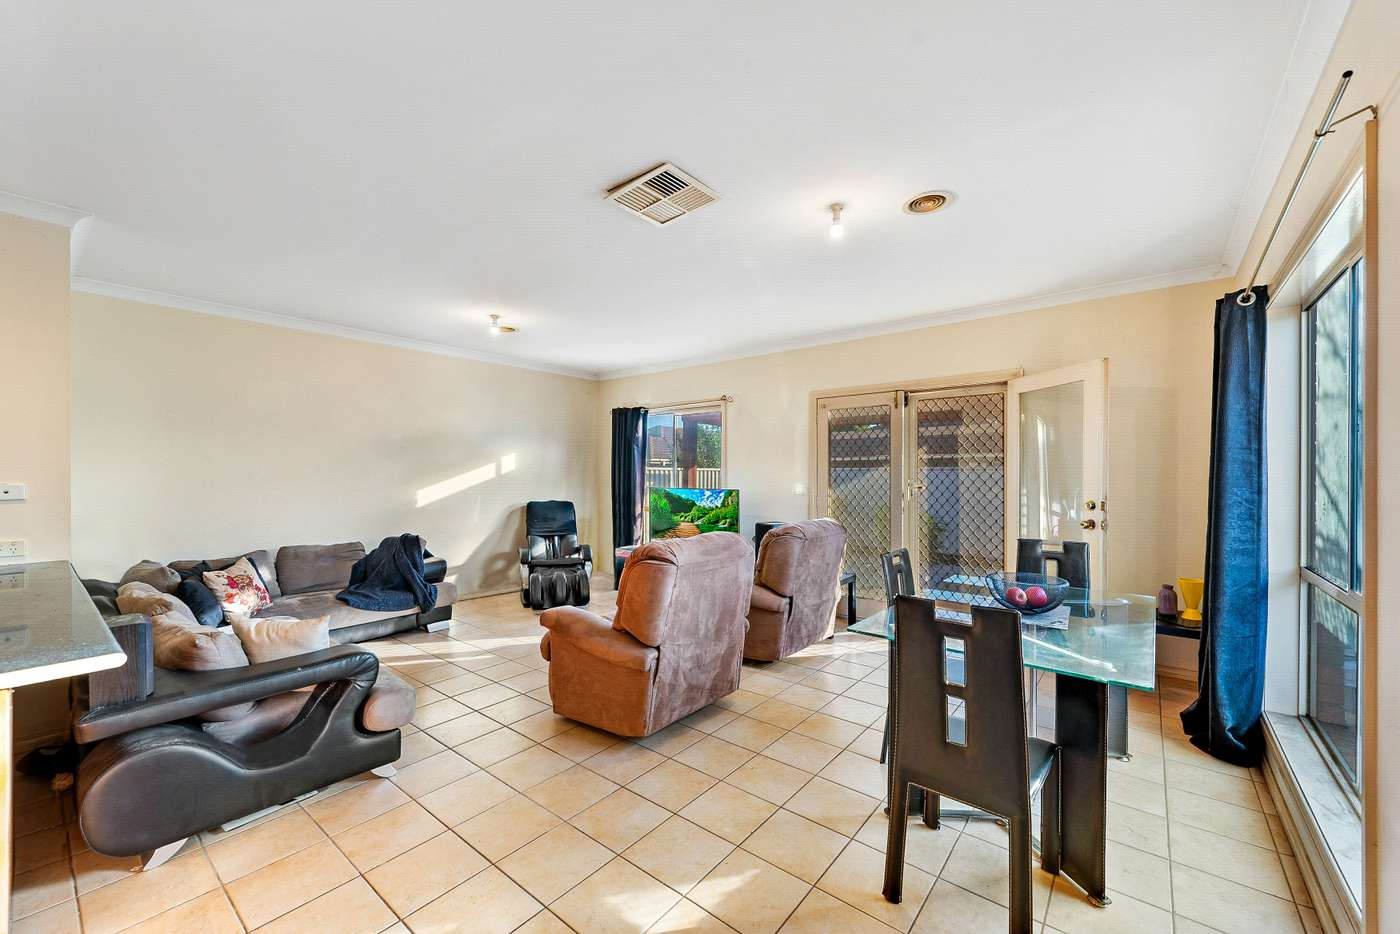 Sixth view of Homely house listing, 14 Hinchinbrook Close, Caroline Springs VIC 3023